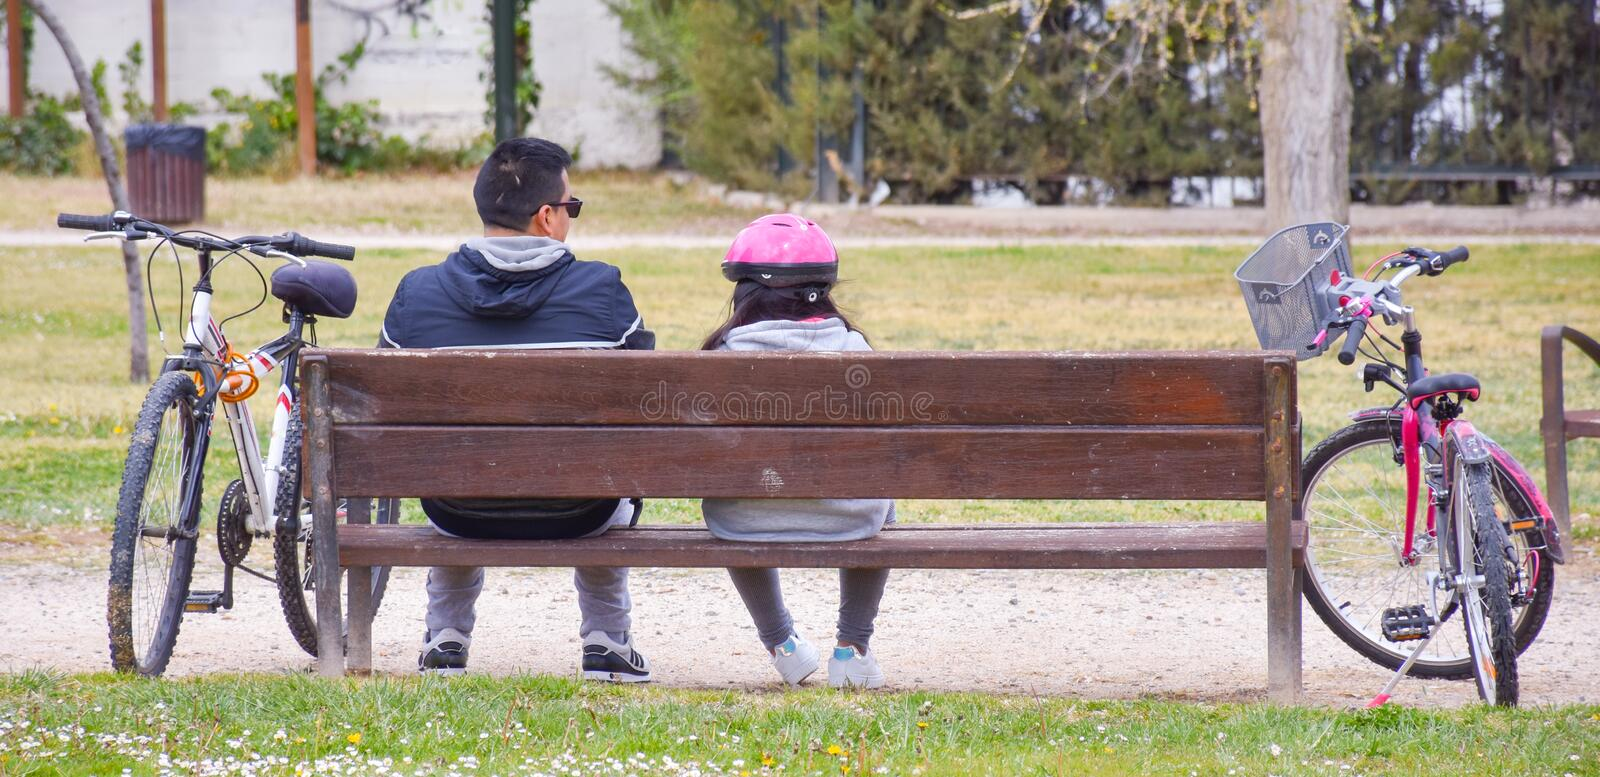 dad, girl and their bicycles at the park. Dad and girl are cyclists resting at a brown bench enjoying a happy day. Now they are royalty free stock images